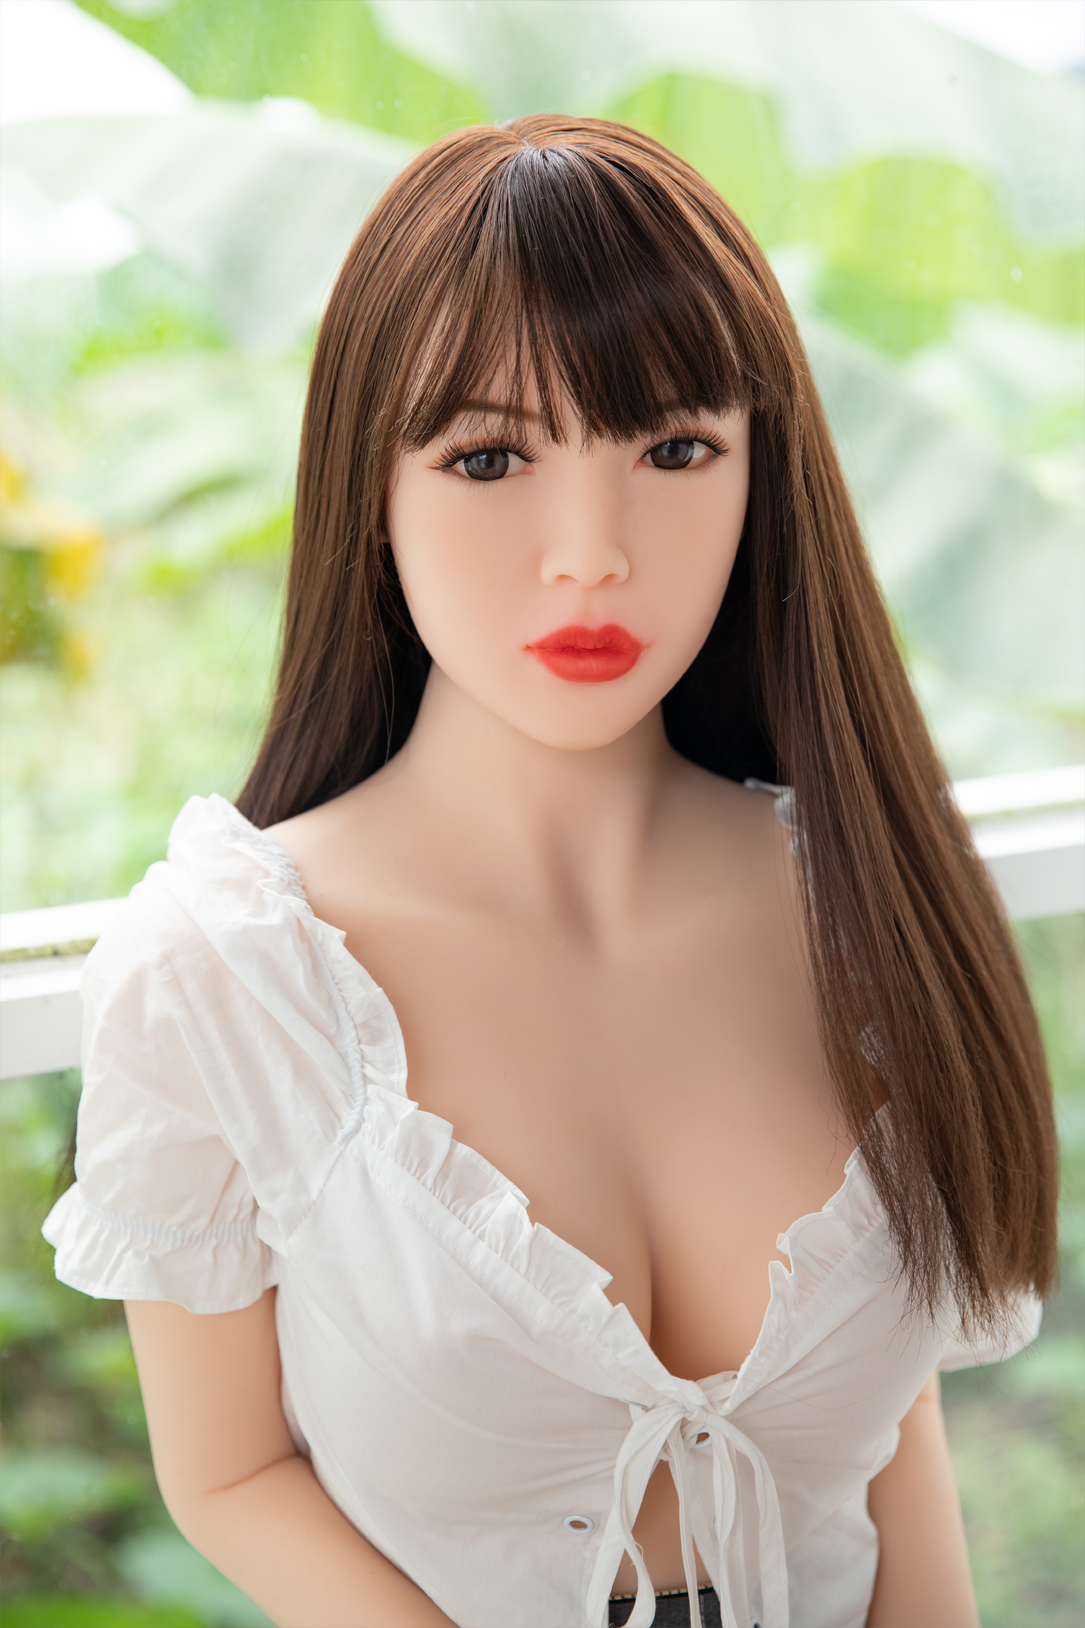 Jarliet Doll TPE Material Love Doll 165cm/5ft4 E-cup with #115 Head